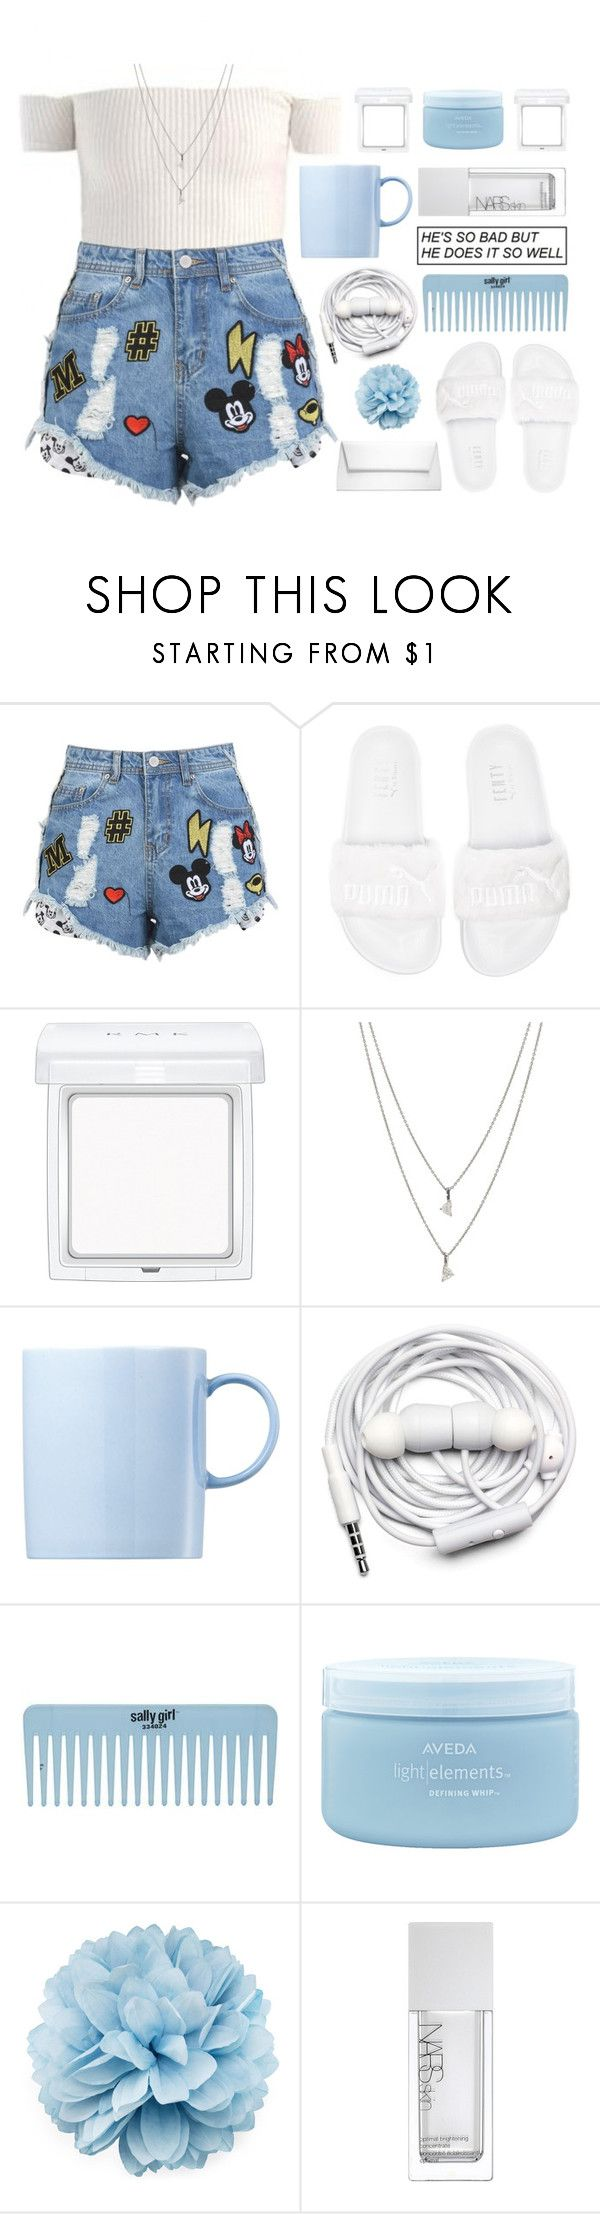 """take it or leave it"" by taraturk ❤ liked on Polyvore featuring Disney Stars Studios, Puma, RMK, Eva Fehren, Rosenthal, Urbanears, Aveda, Gucci, NARS Cosmetics and Michael Kors"